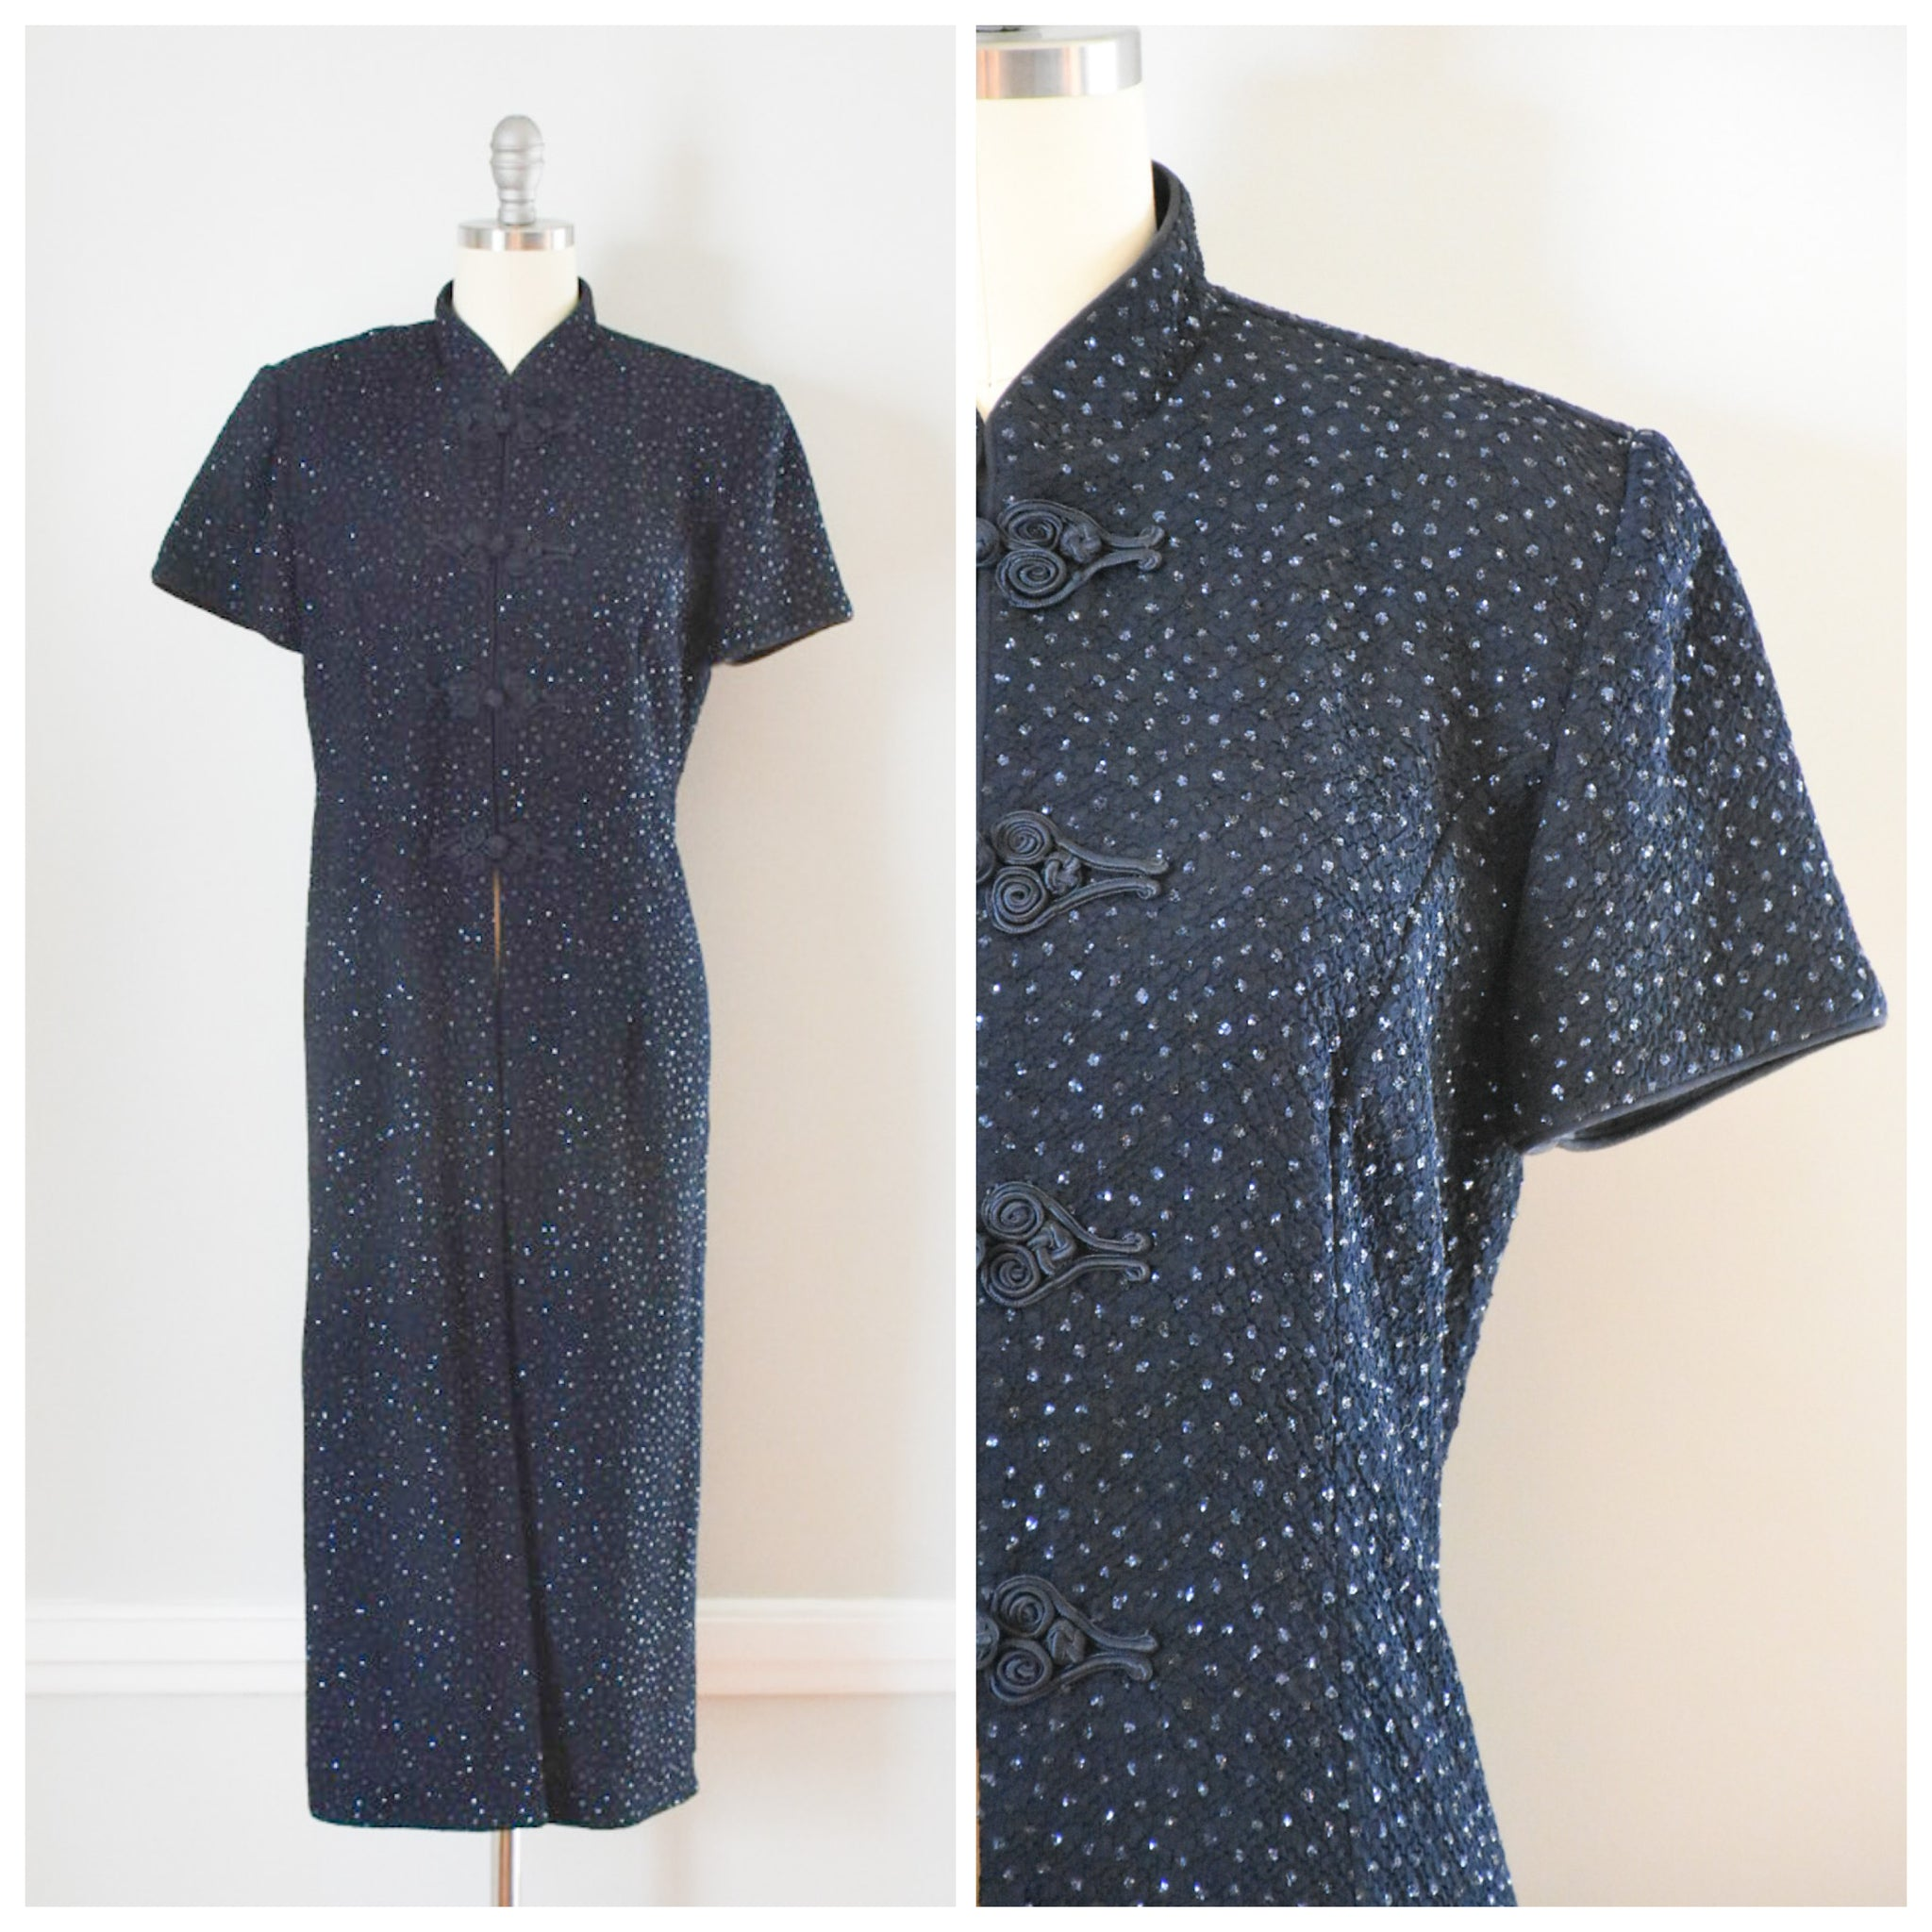 80s Vintage Cheongsam Topper from DuncanLovesTess.com